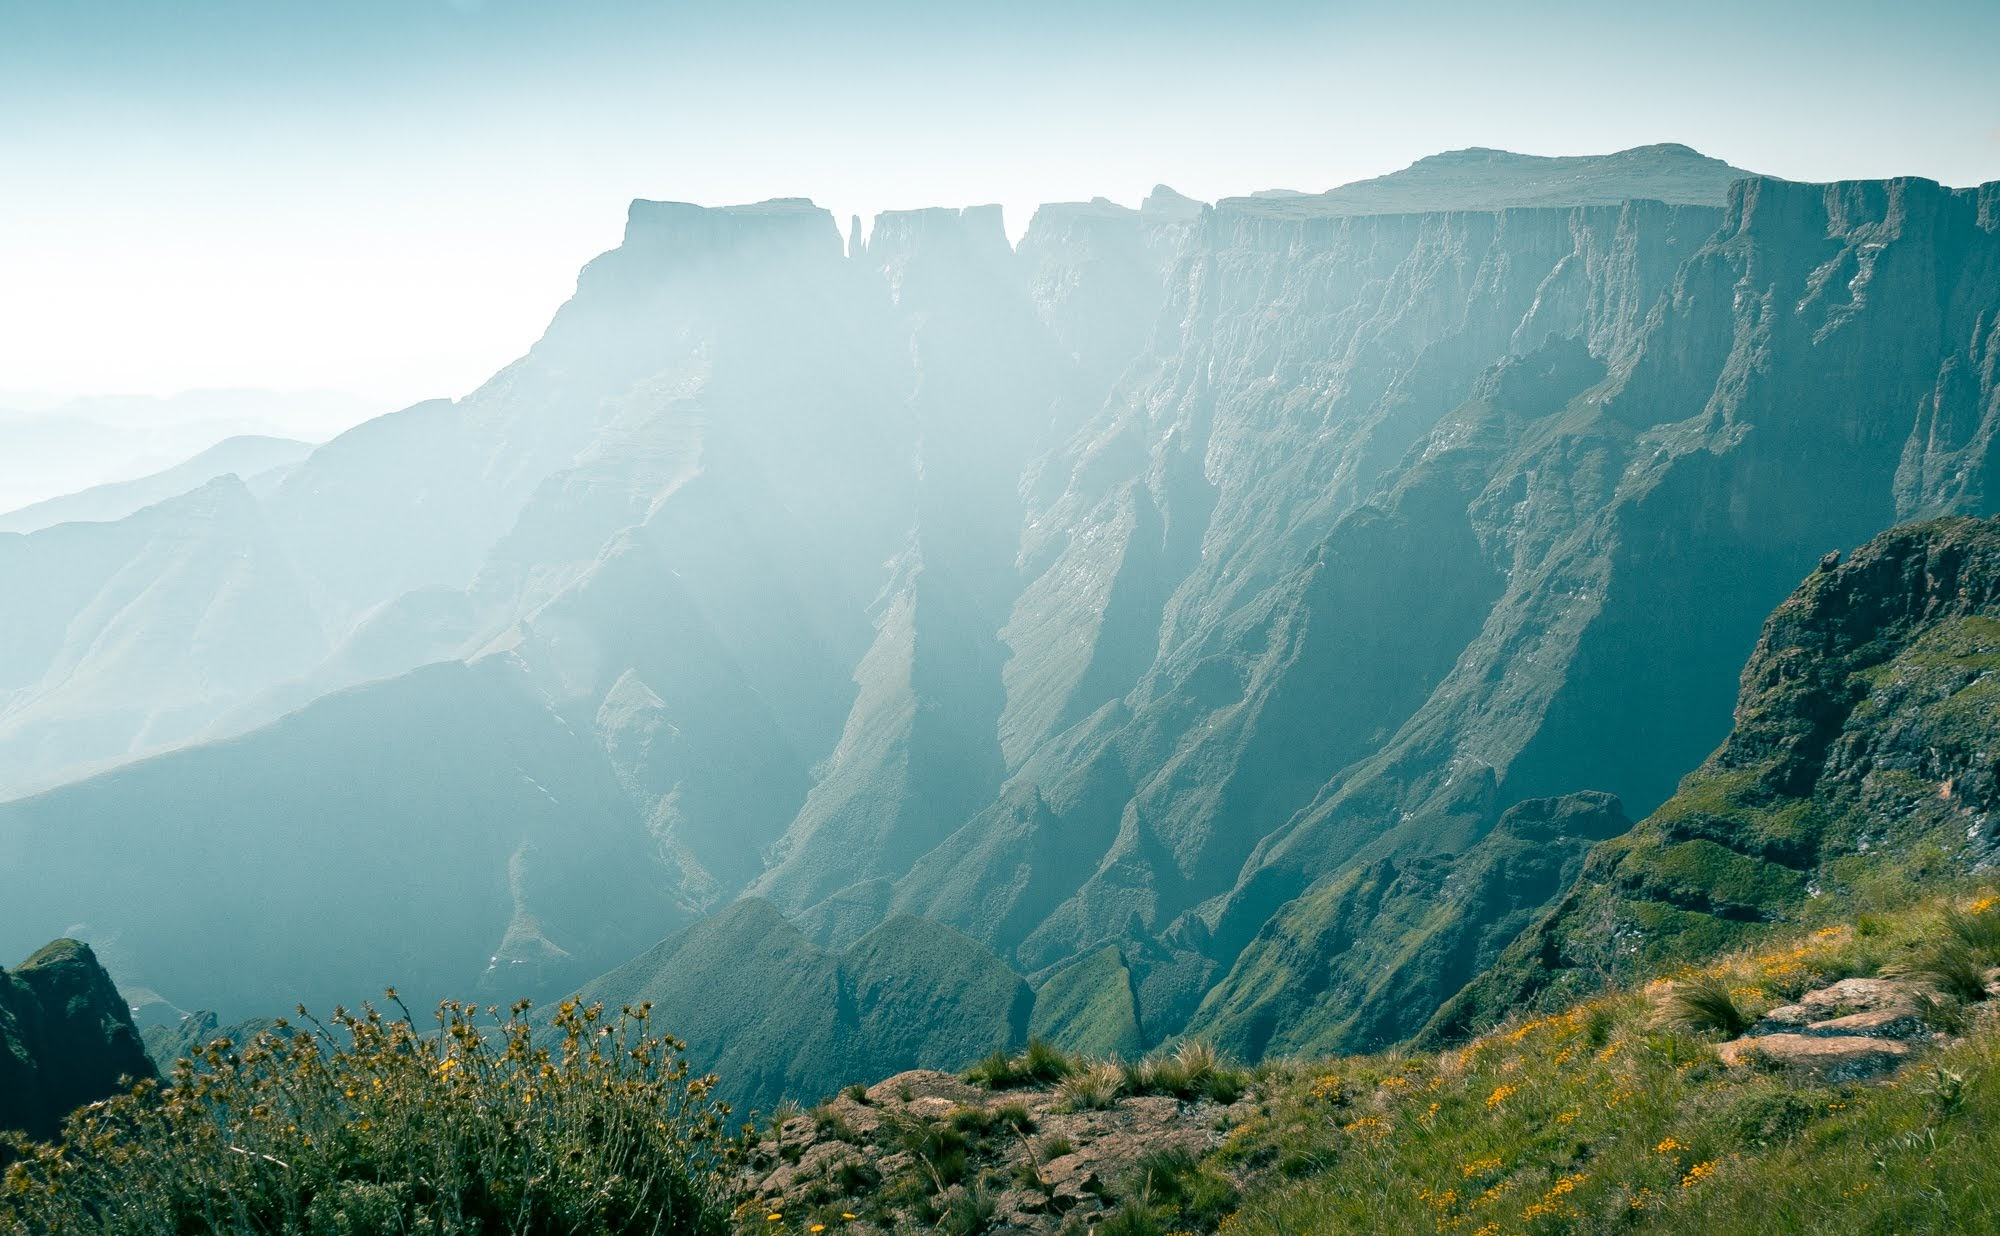 The amphitheatre section of the Drakensberg Mountain